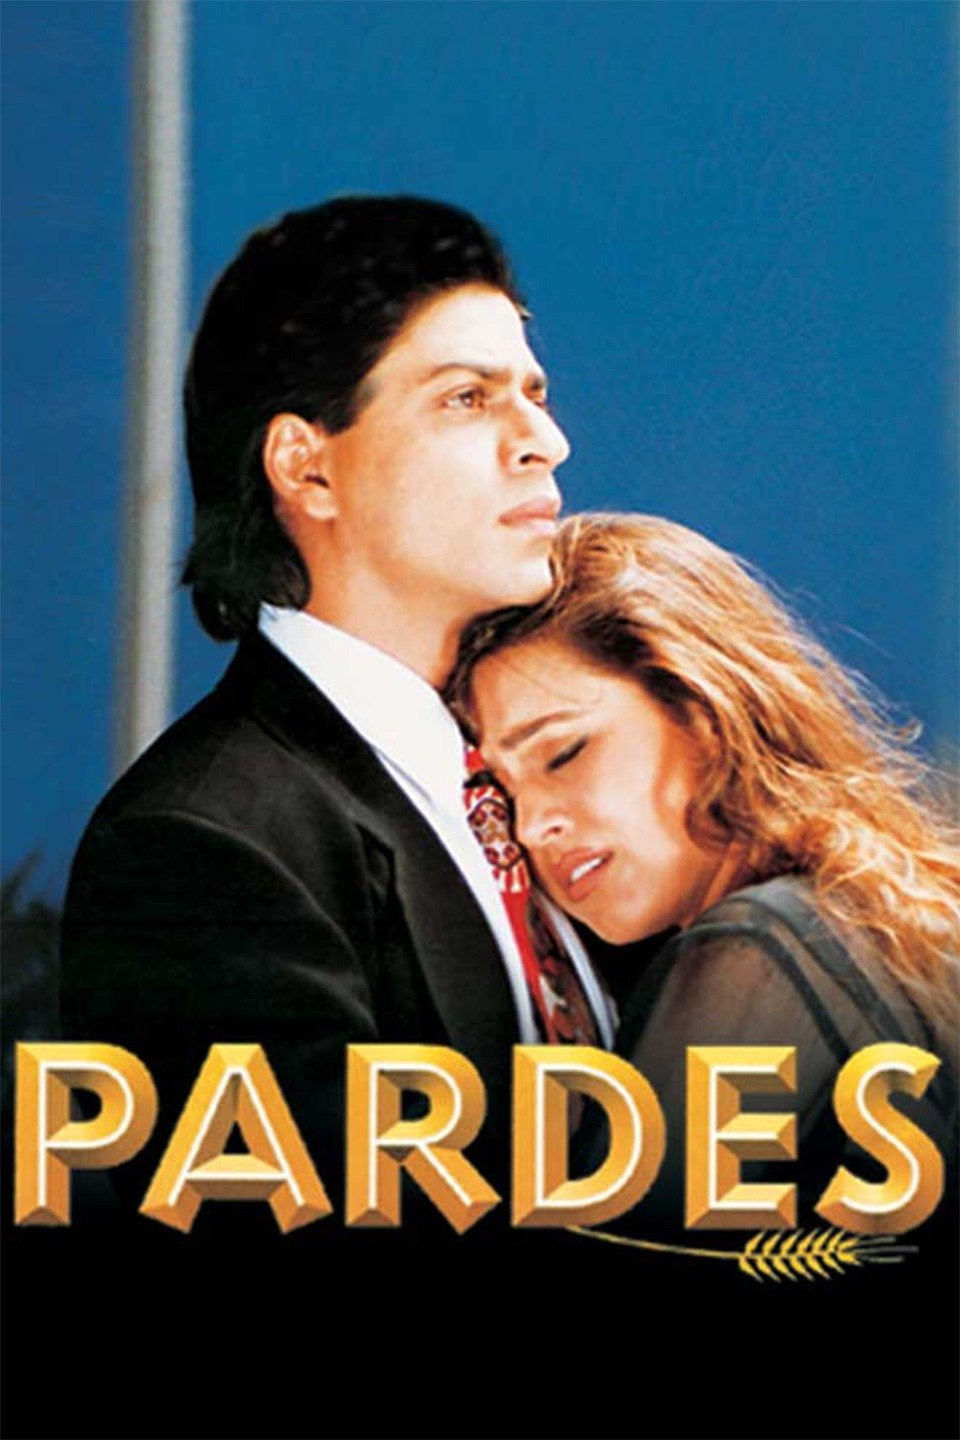 Pardes Full Movie Download HD DVDRip 720p 1997